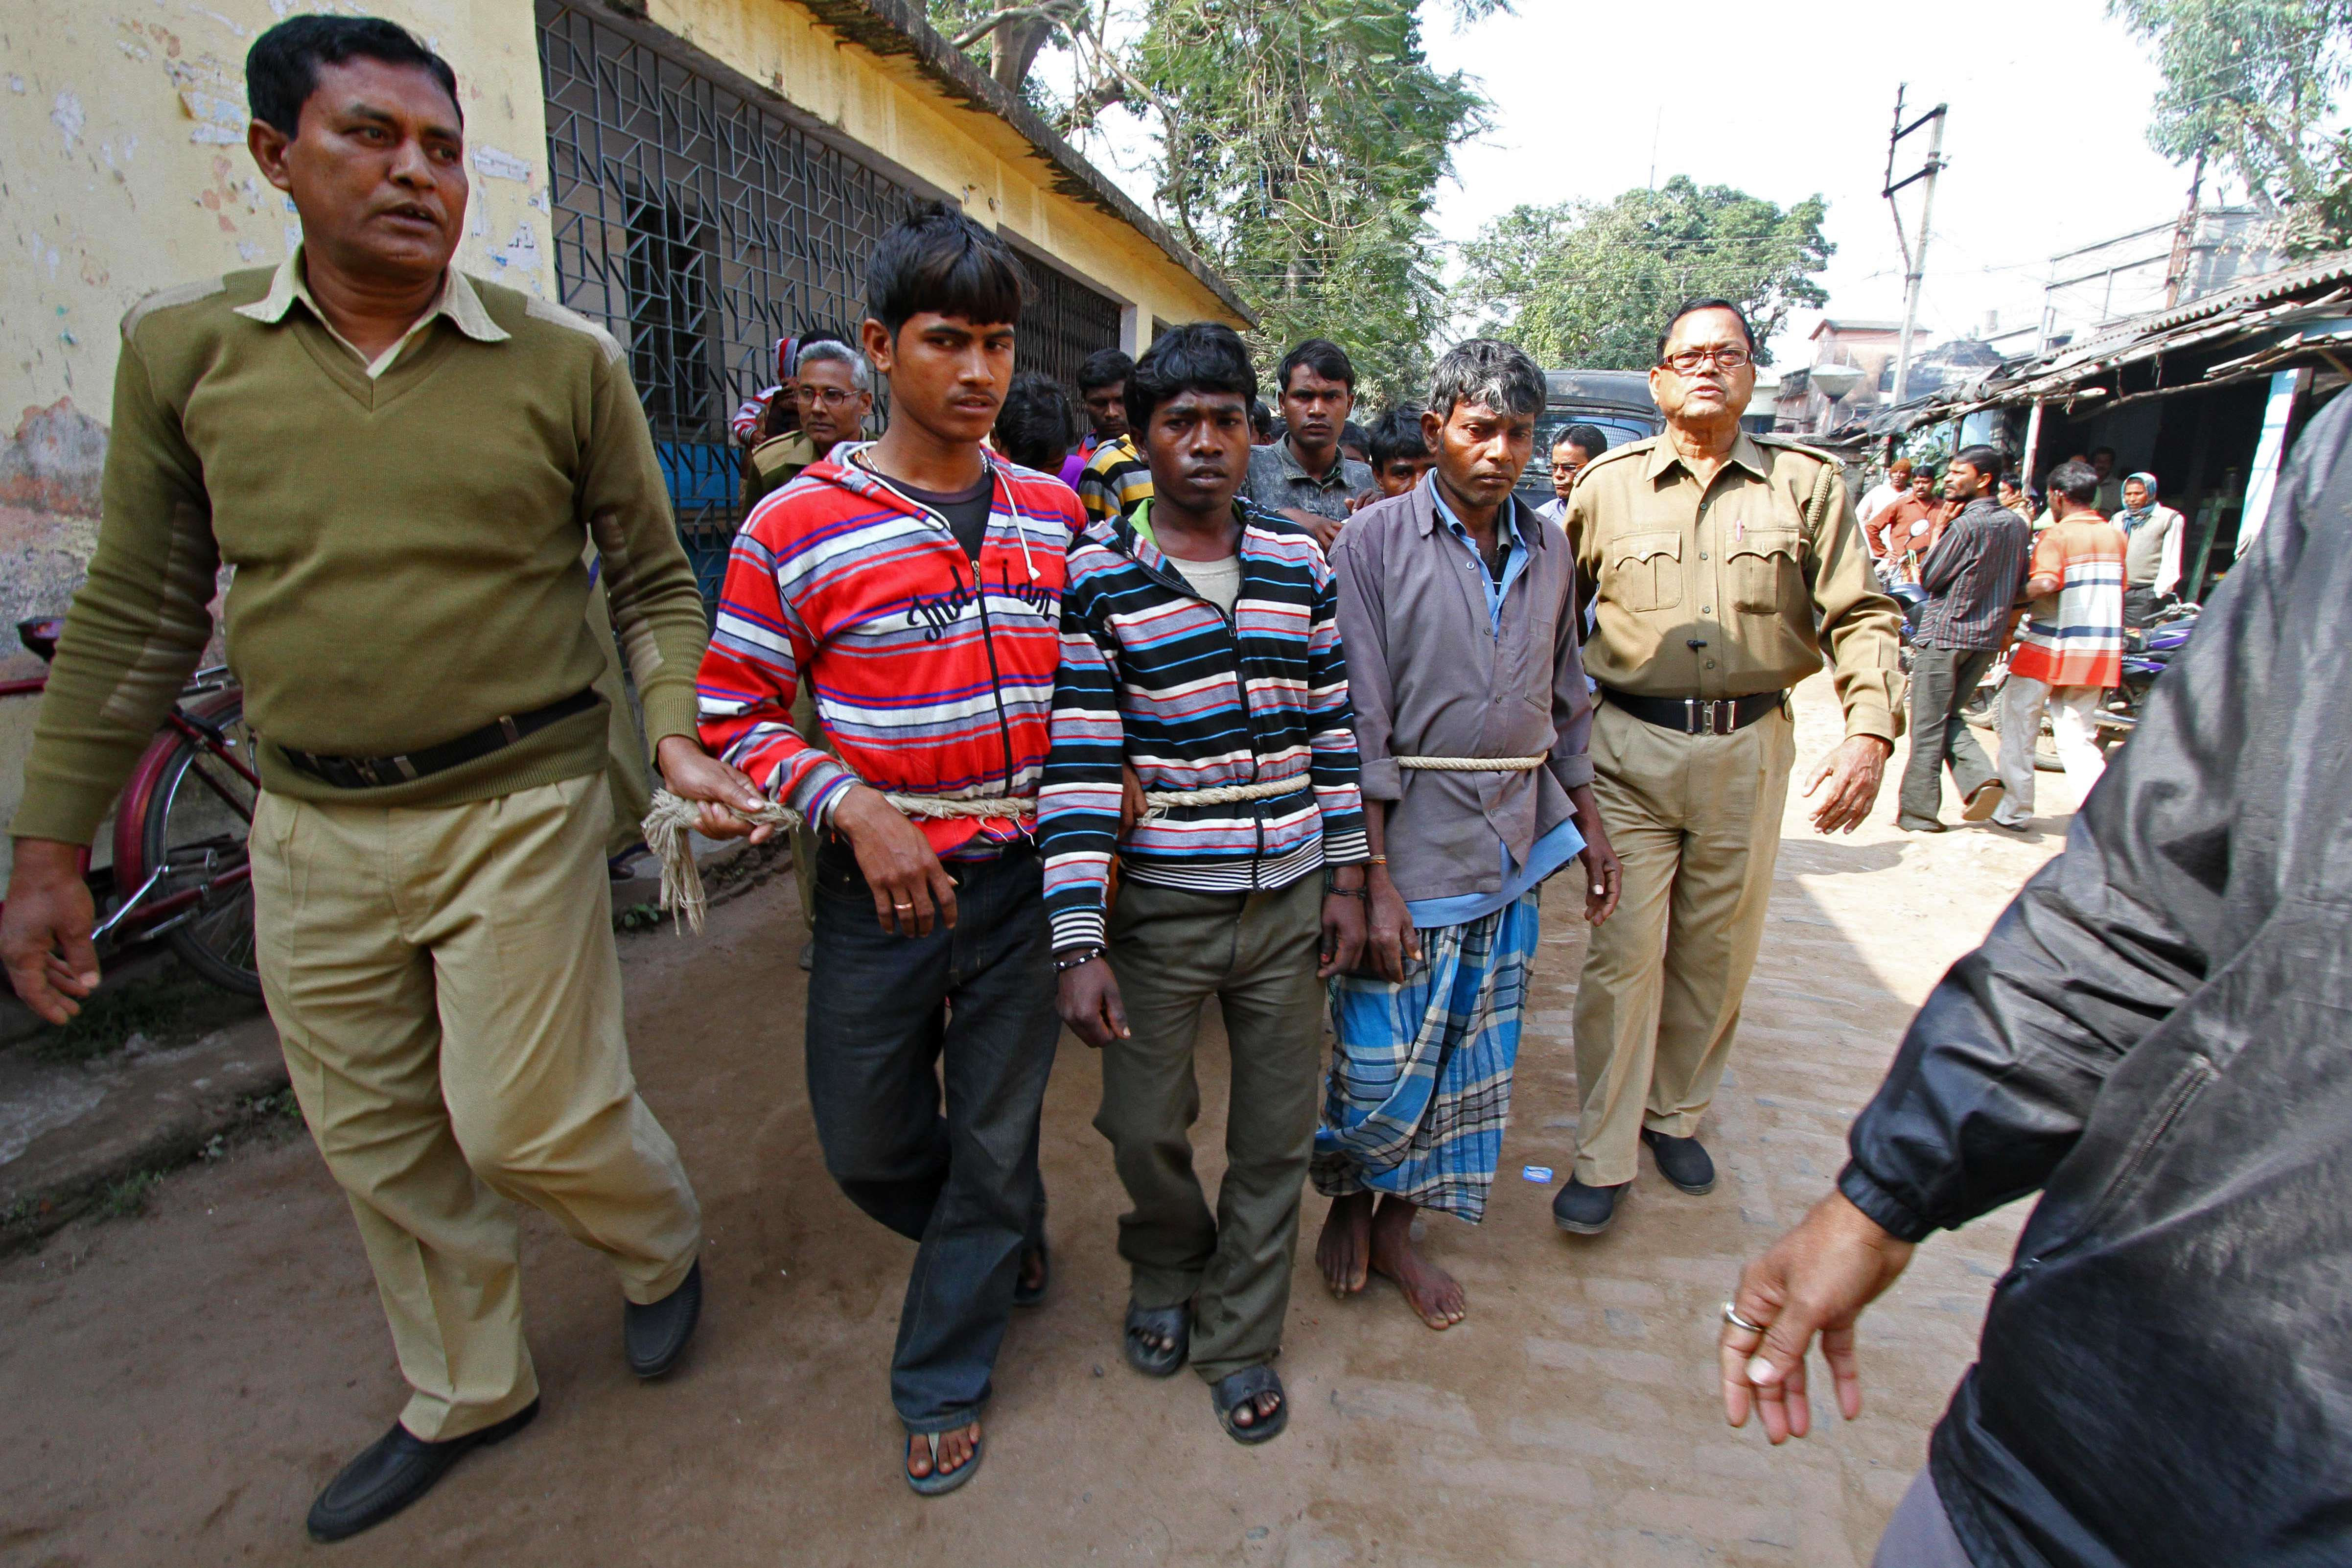 Suspects in a gang-rape case are led by police to a district courthouse in Birdhum district near the village of Subalpur, on 23 January  2014. (AFP Photo)